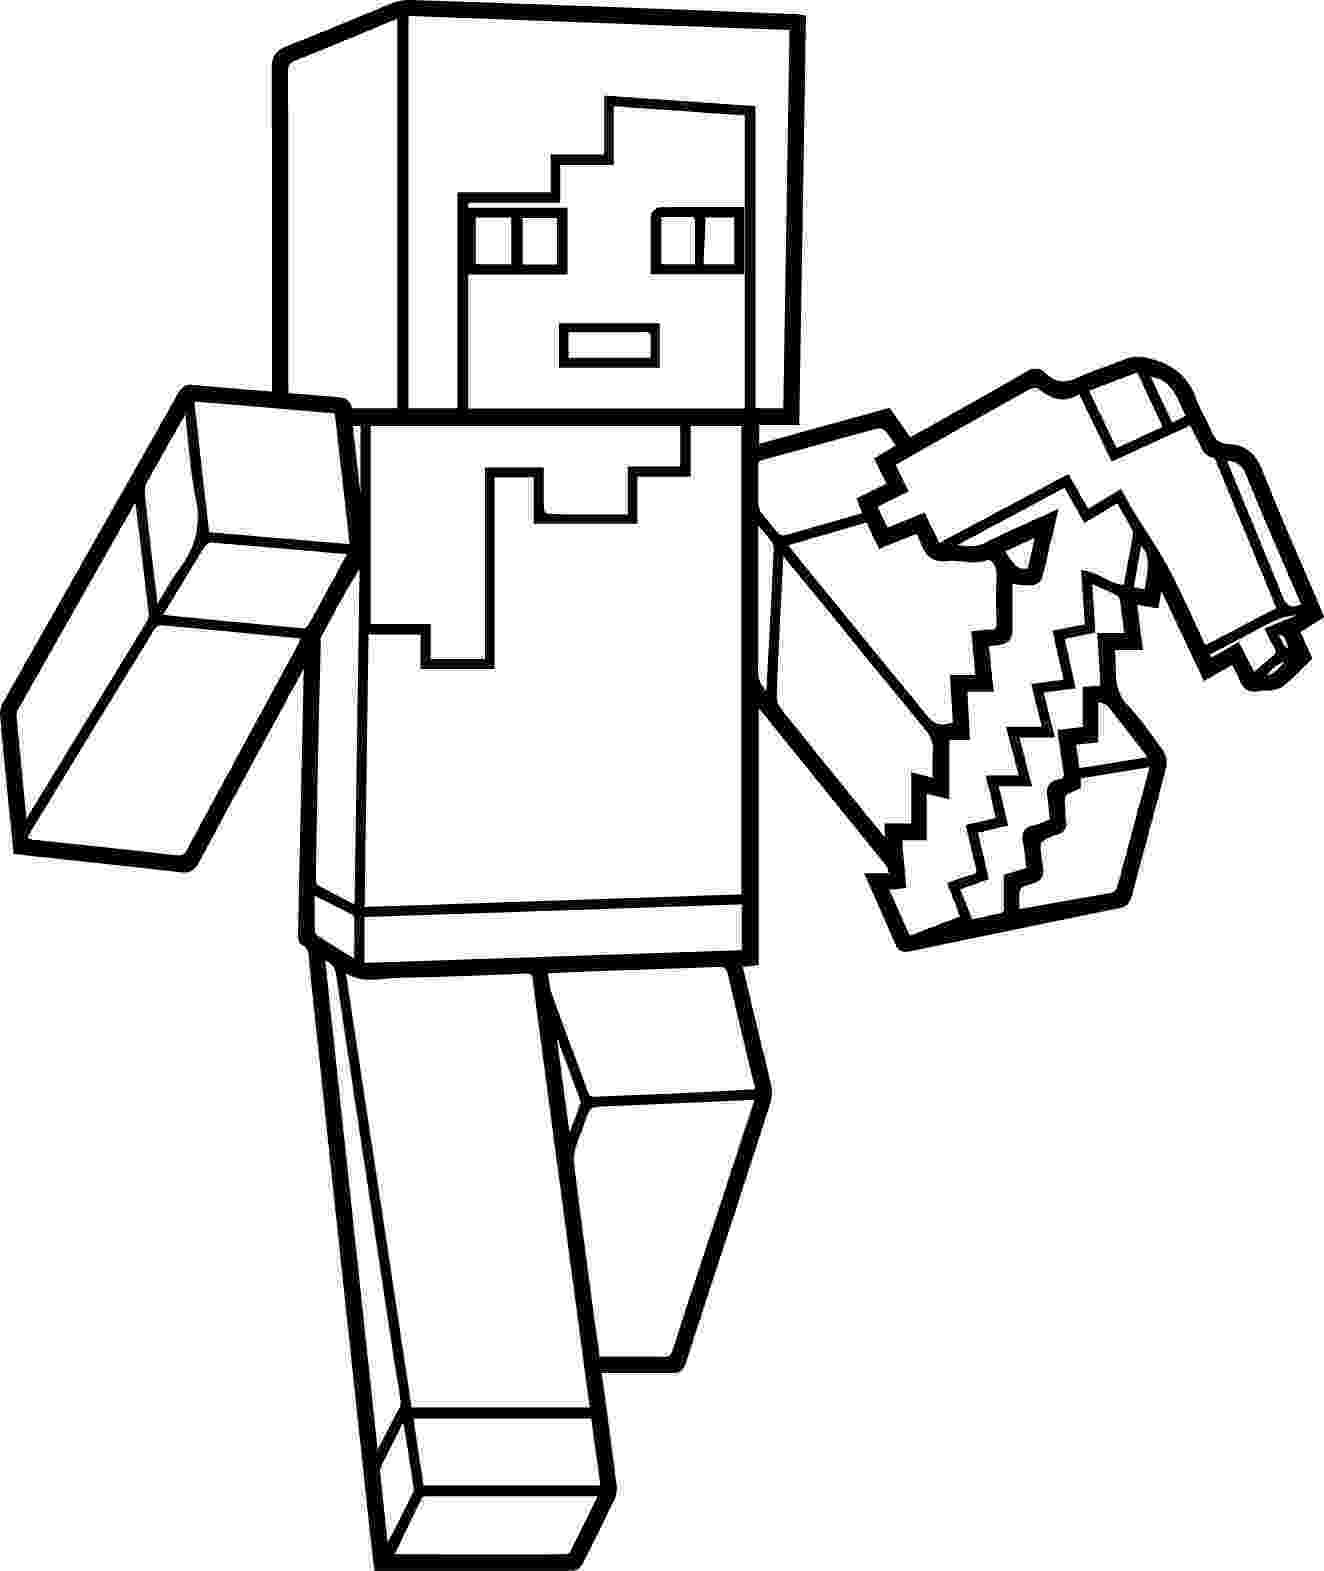 minecraft coloring pages to print minecraft coloring pages at getcoloringscom free coloring to print minecraft pages